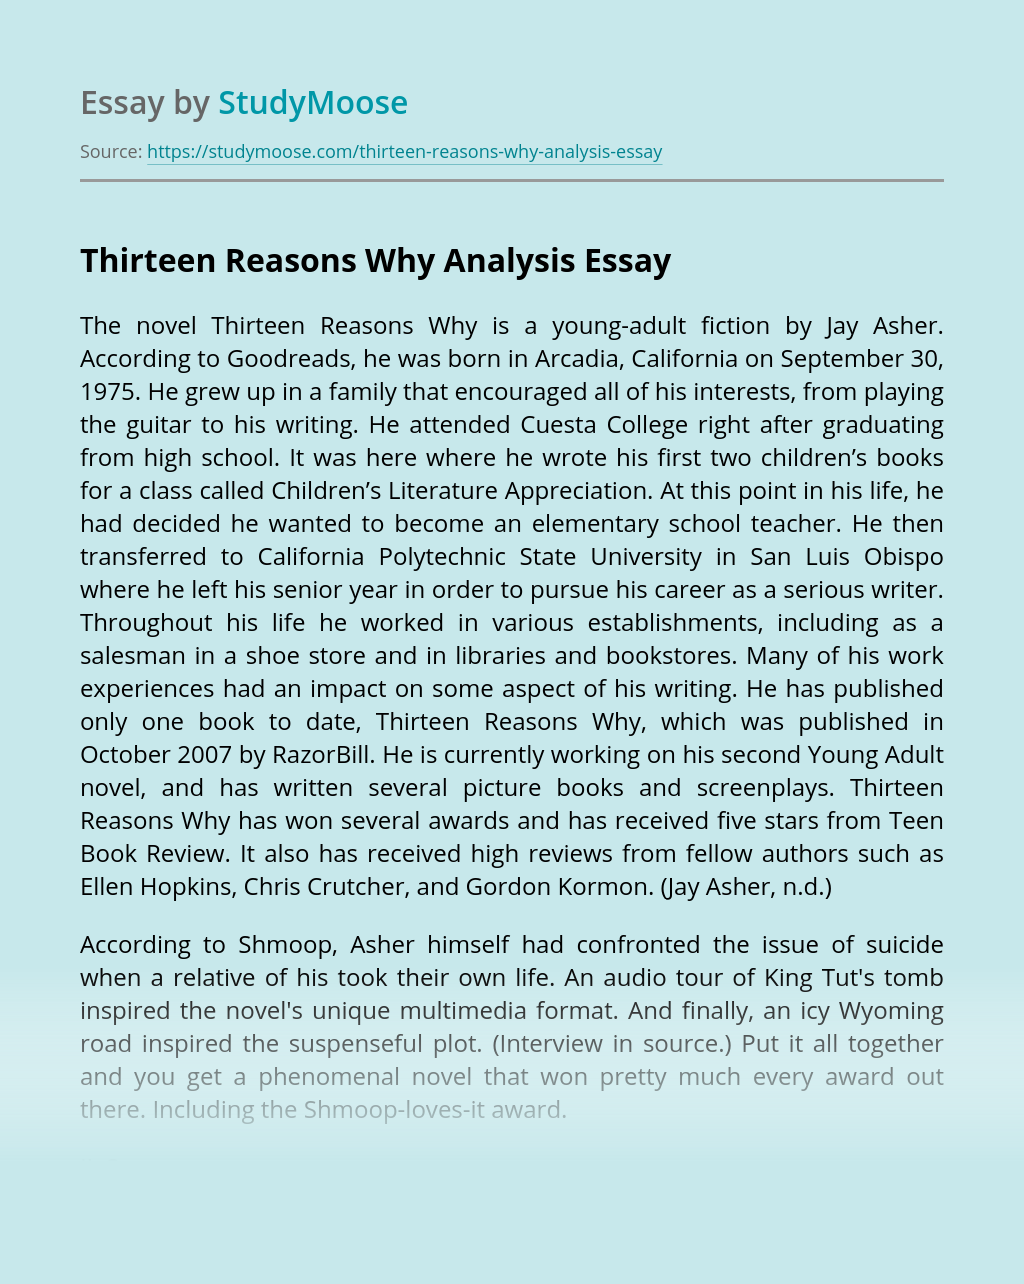 Thirteen Reasons Why Analysis